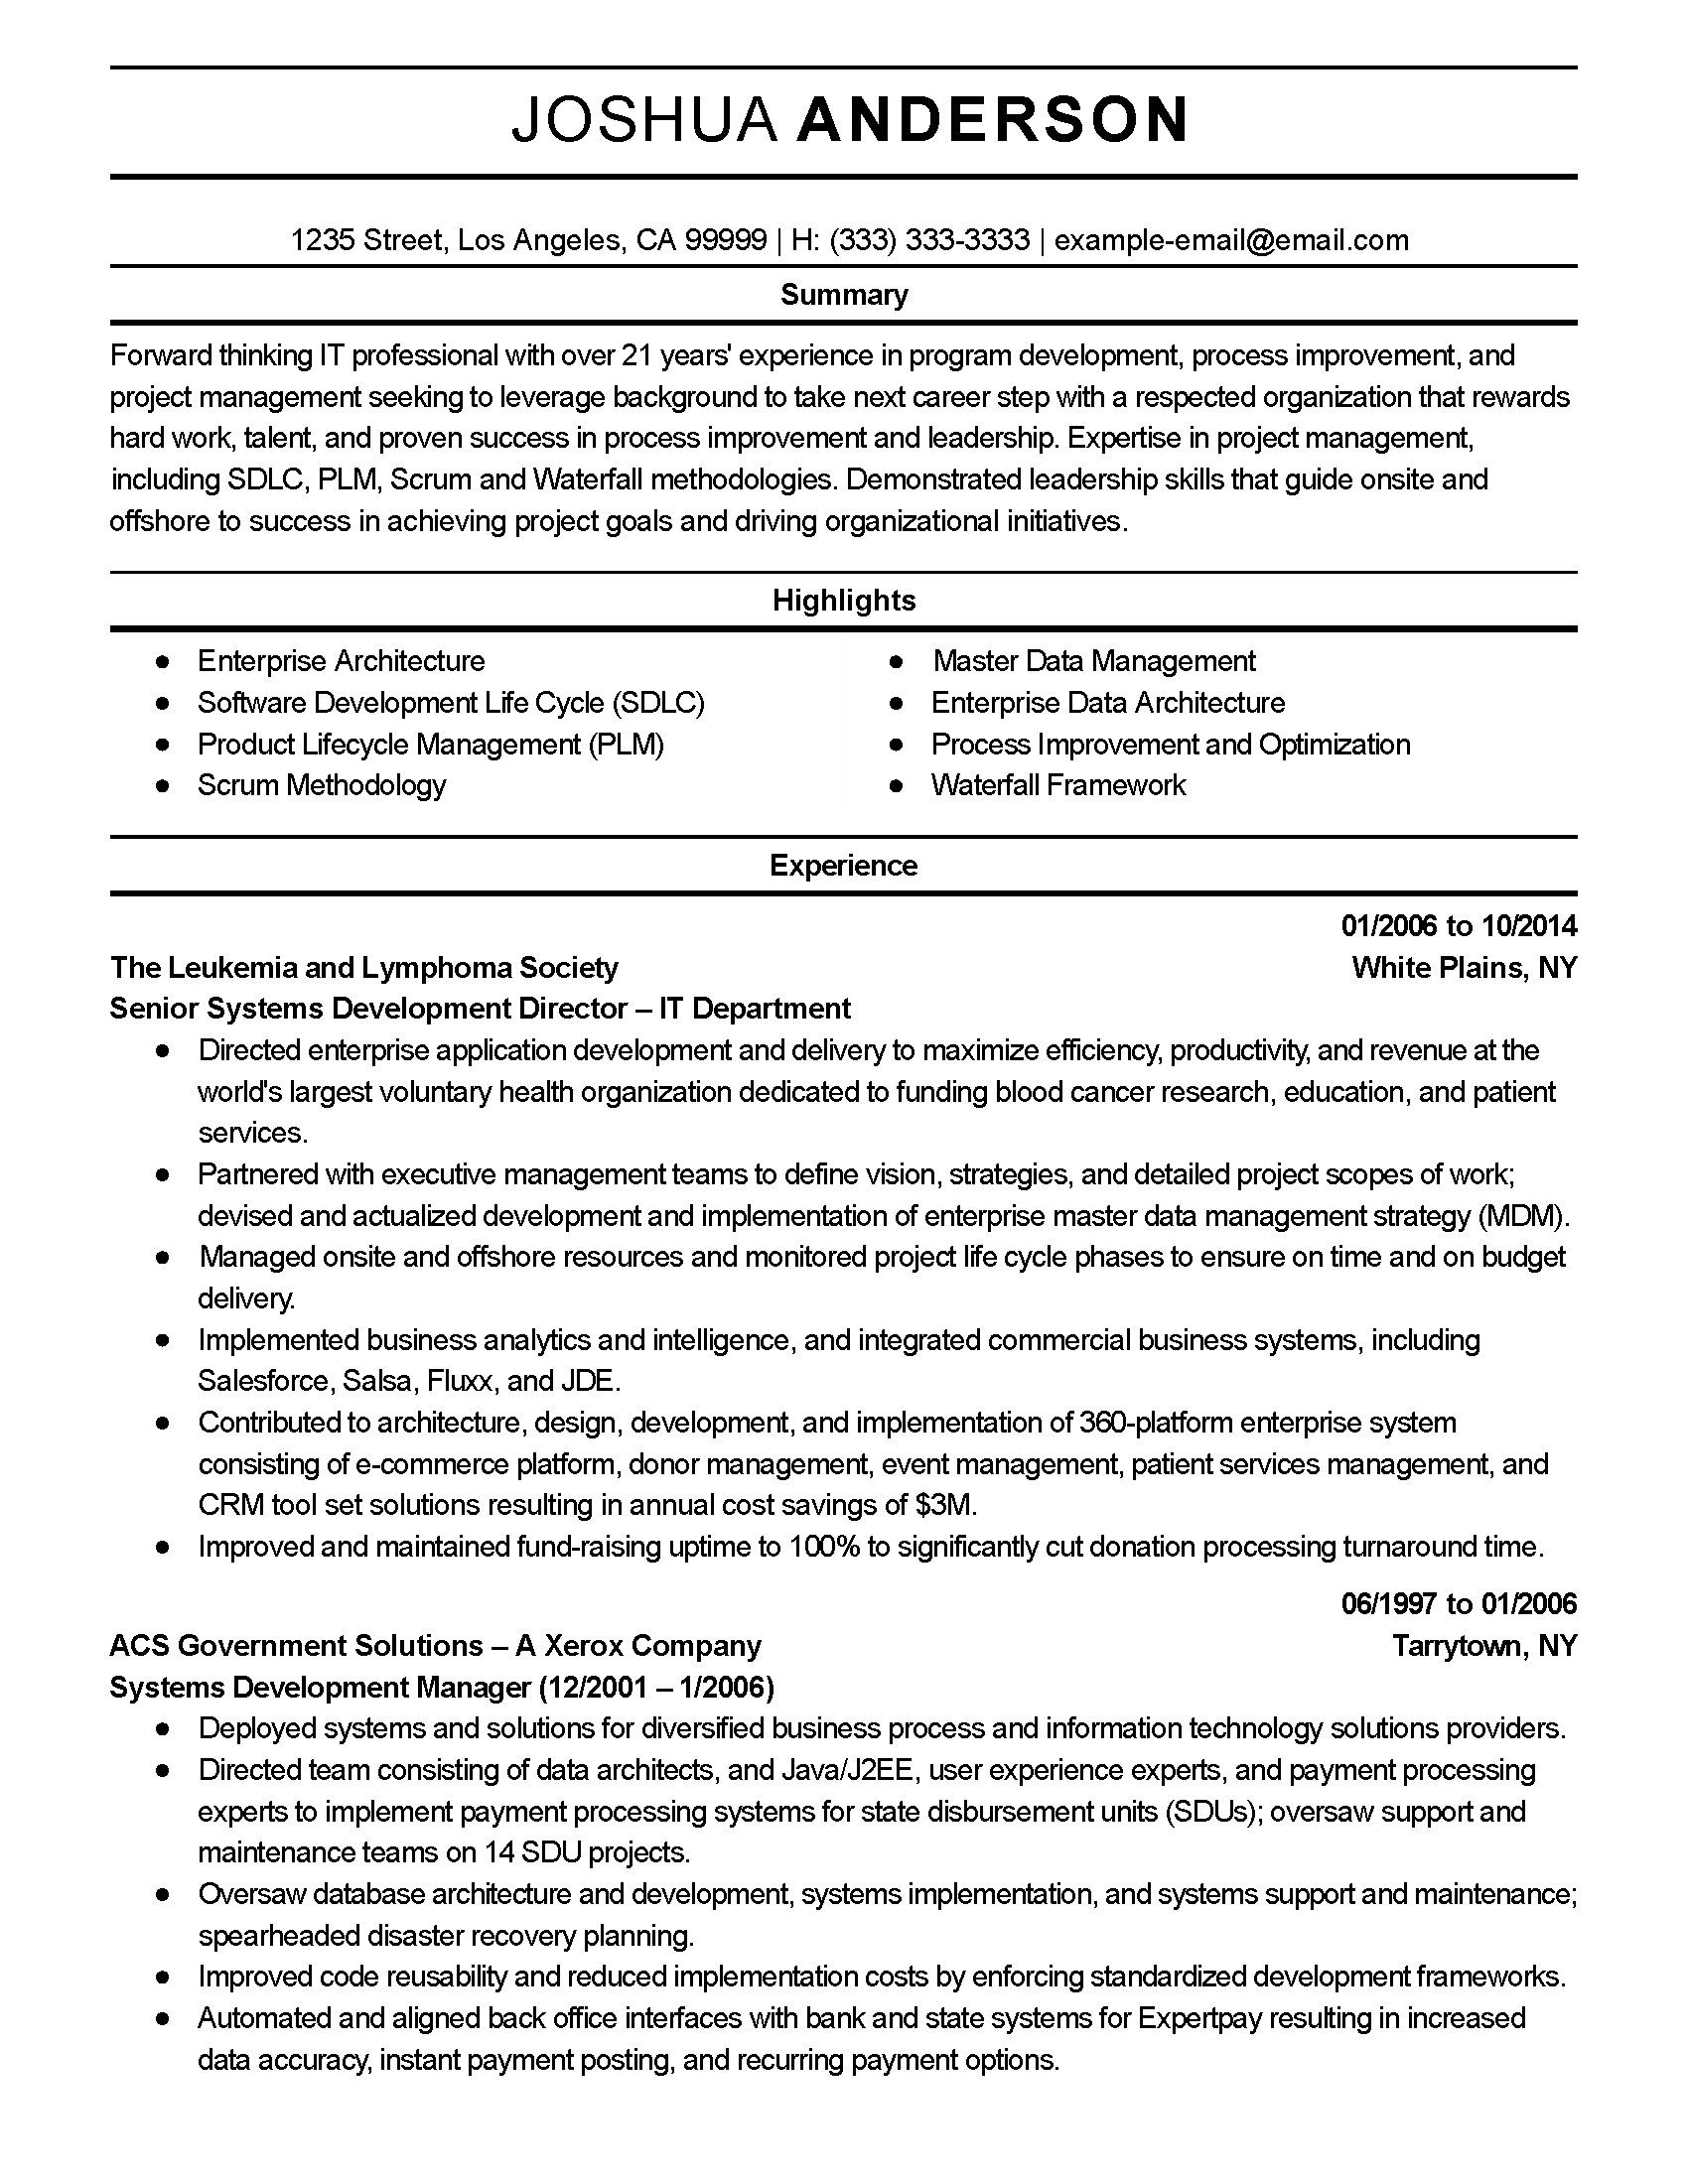 Oracle Dba Sample Resume For 2 Years Experience Job Application